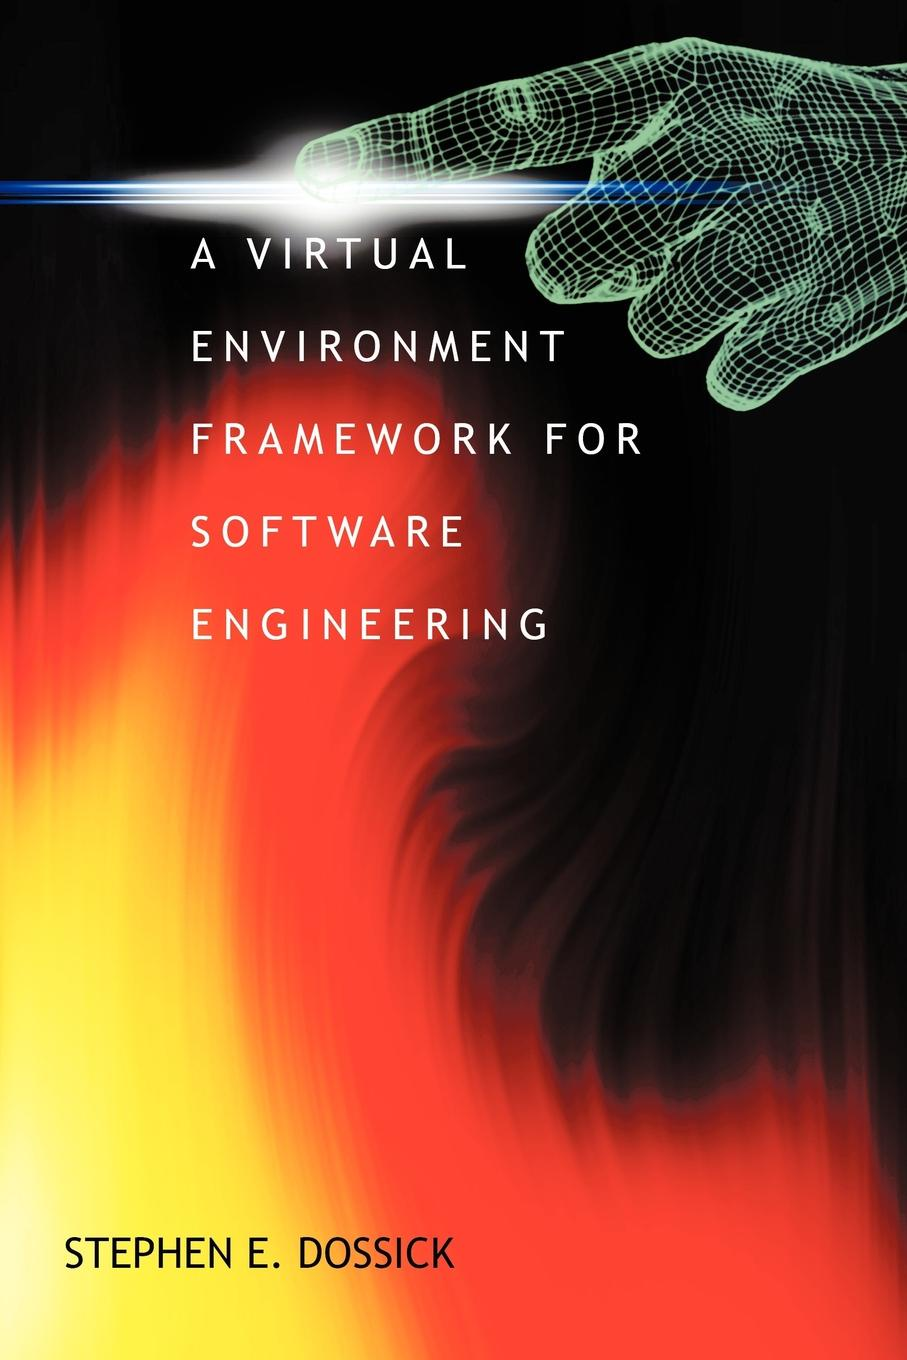 Stephen E. Dossick A Virtual Environment Framework For Software Engineering stephen checkley engineering tuneable gene circuits in yeast